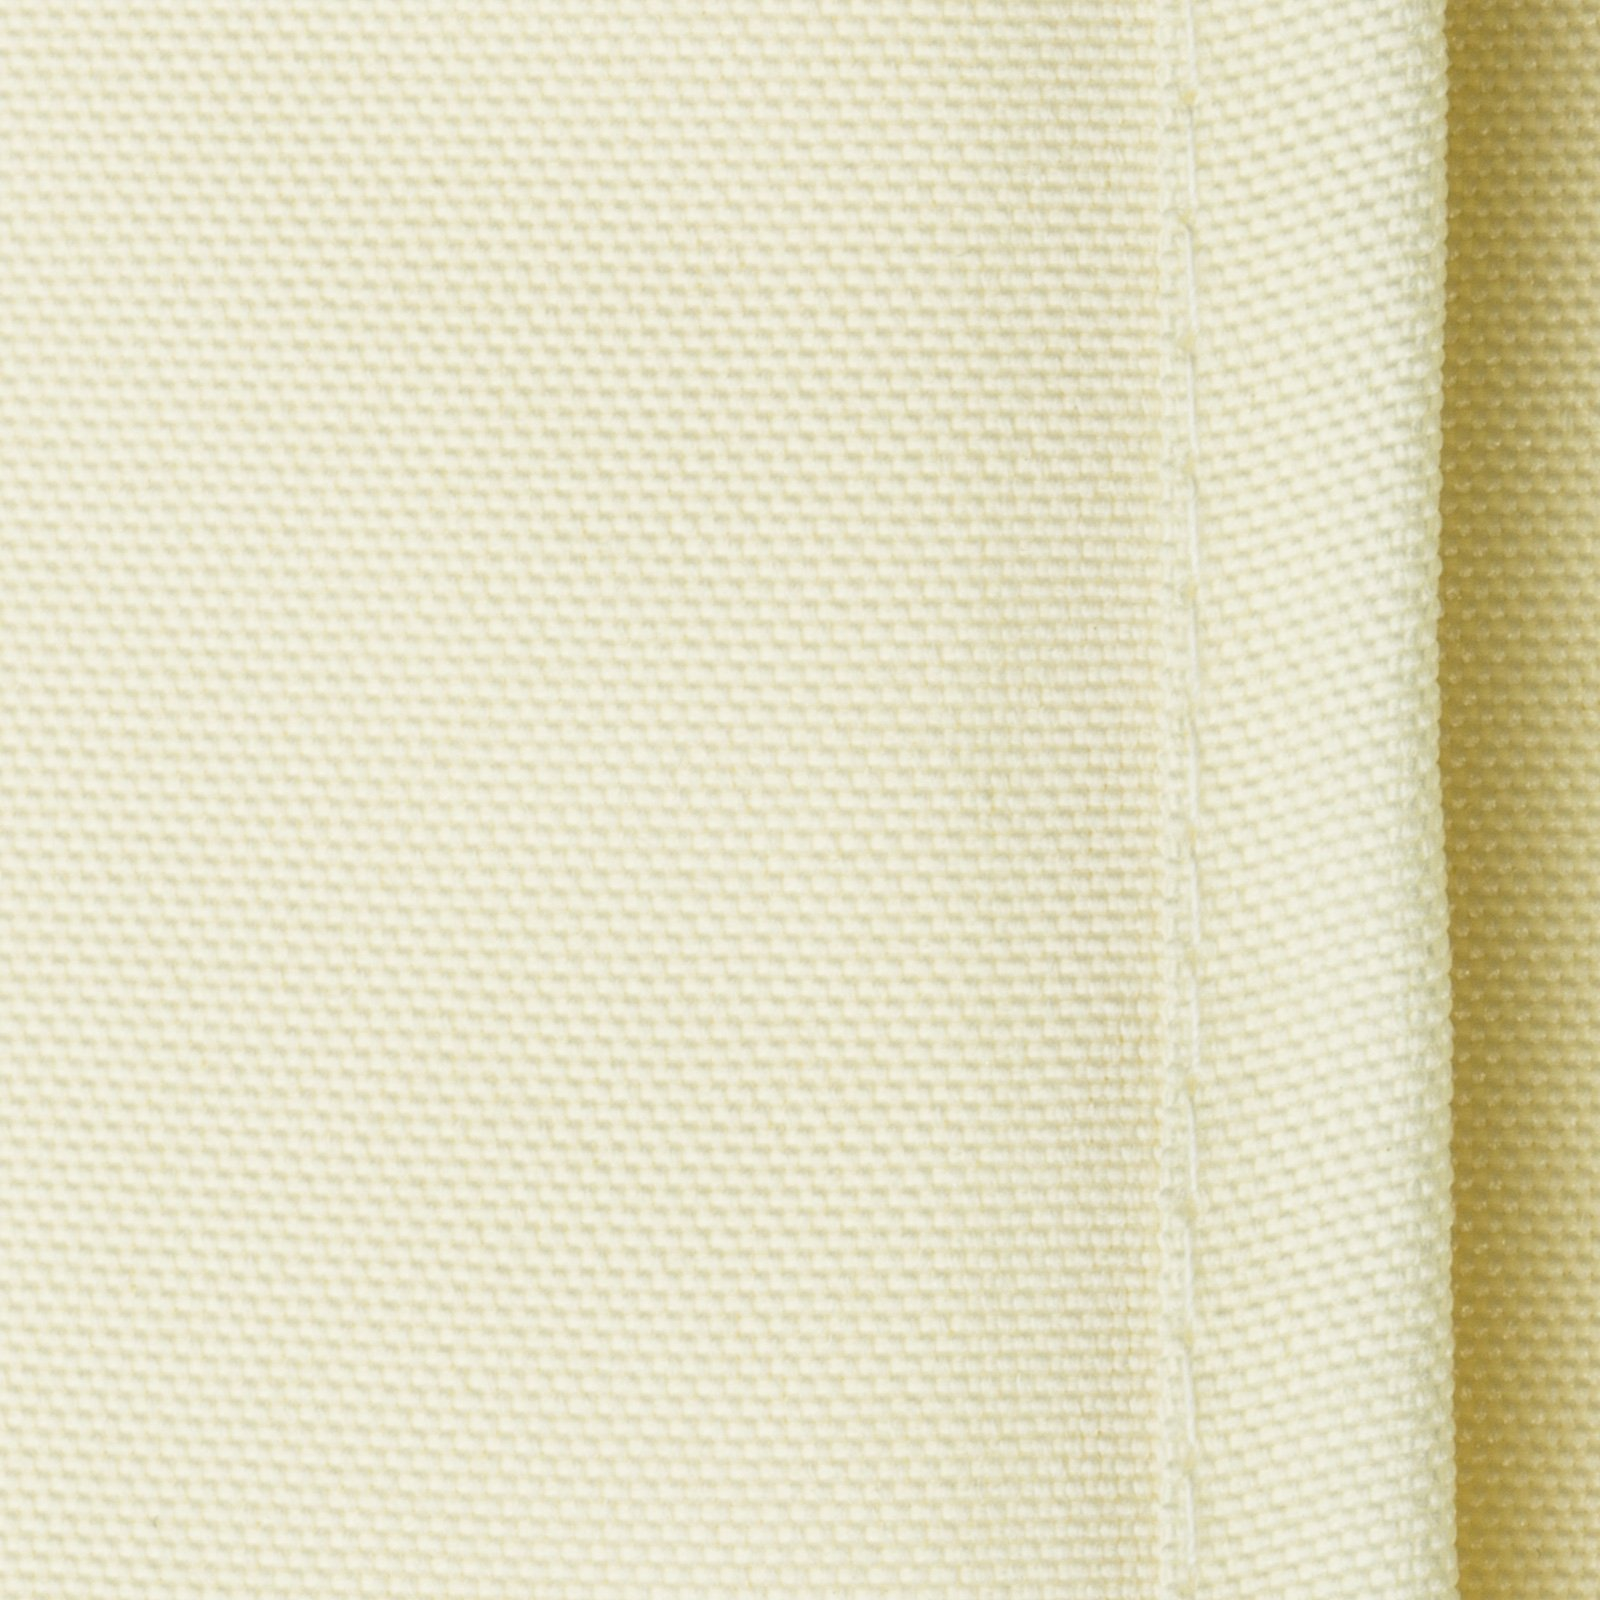 Lann's Linens - 10 pcs 132 in. Round PREMIUM WEIGHT Seamless Tablecloths - for Wedding or Party Use - Ivory by Lanns Linens (Image #3)